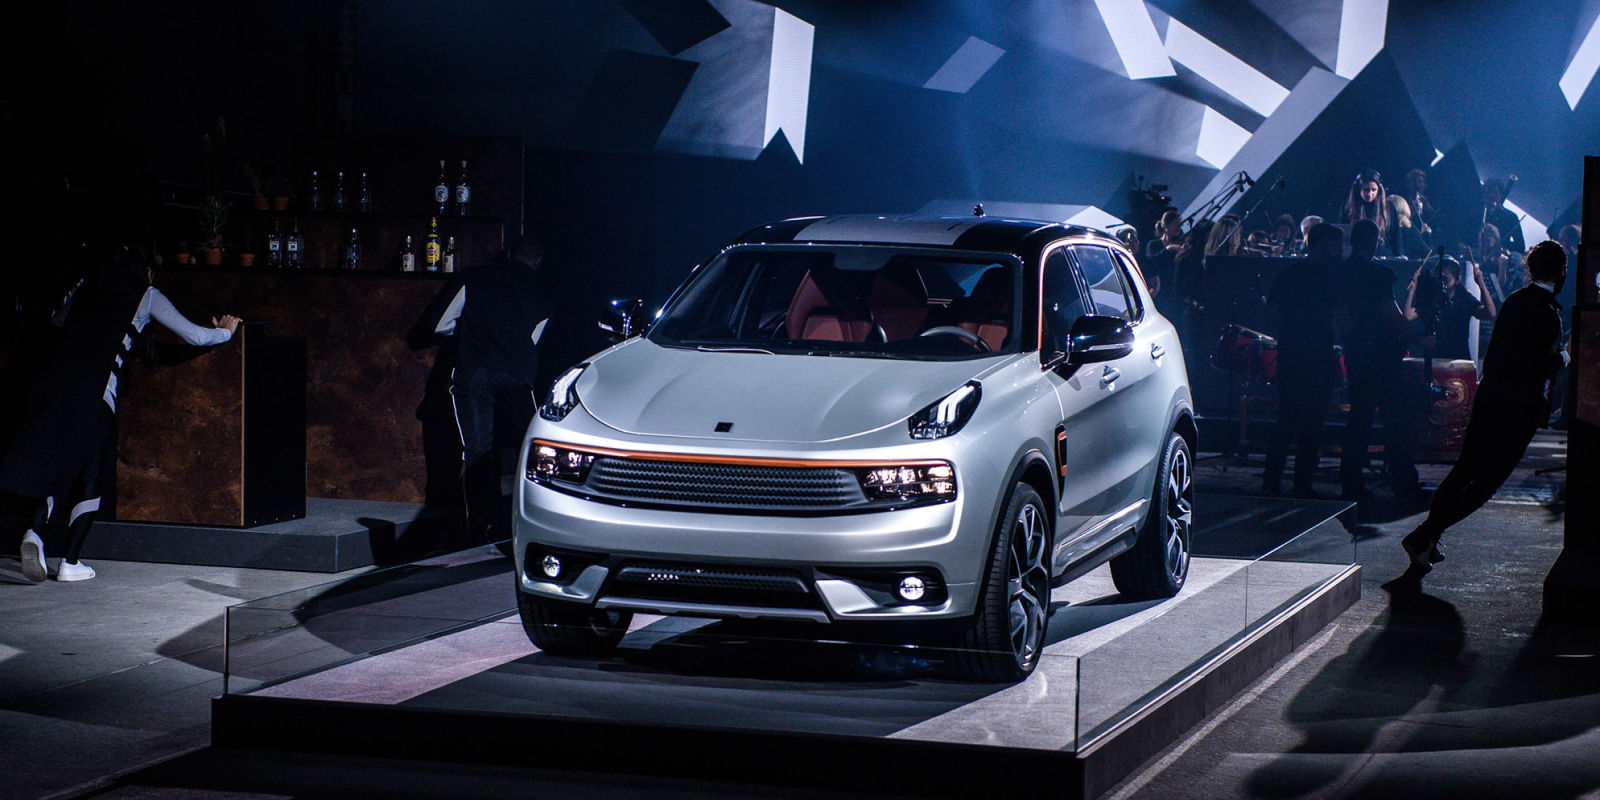 Best Cars Under 100000 >> Lynk & Co Wants to Build a Car You'll Love as Much as Your Smartphone